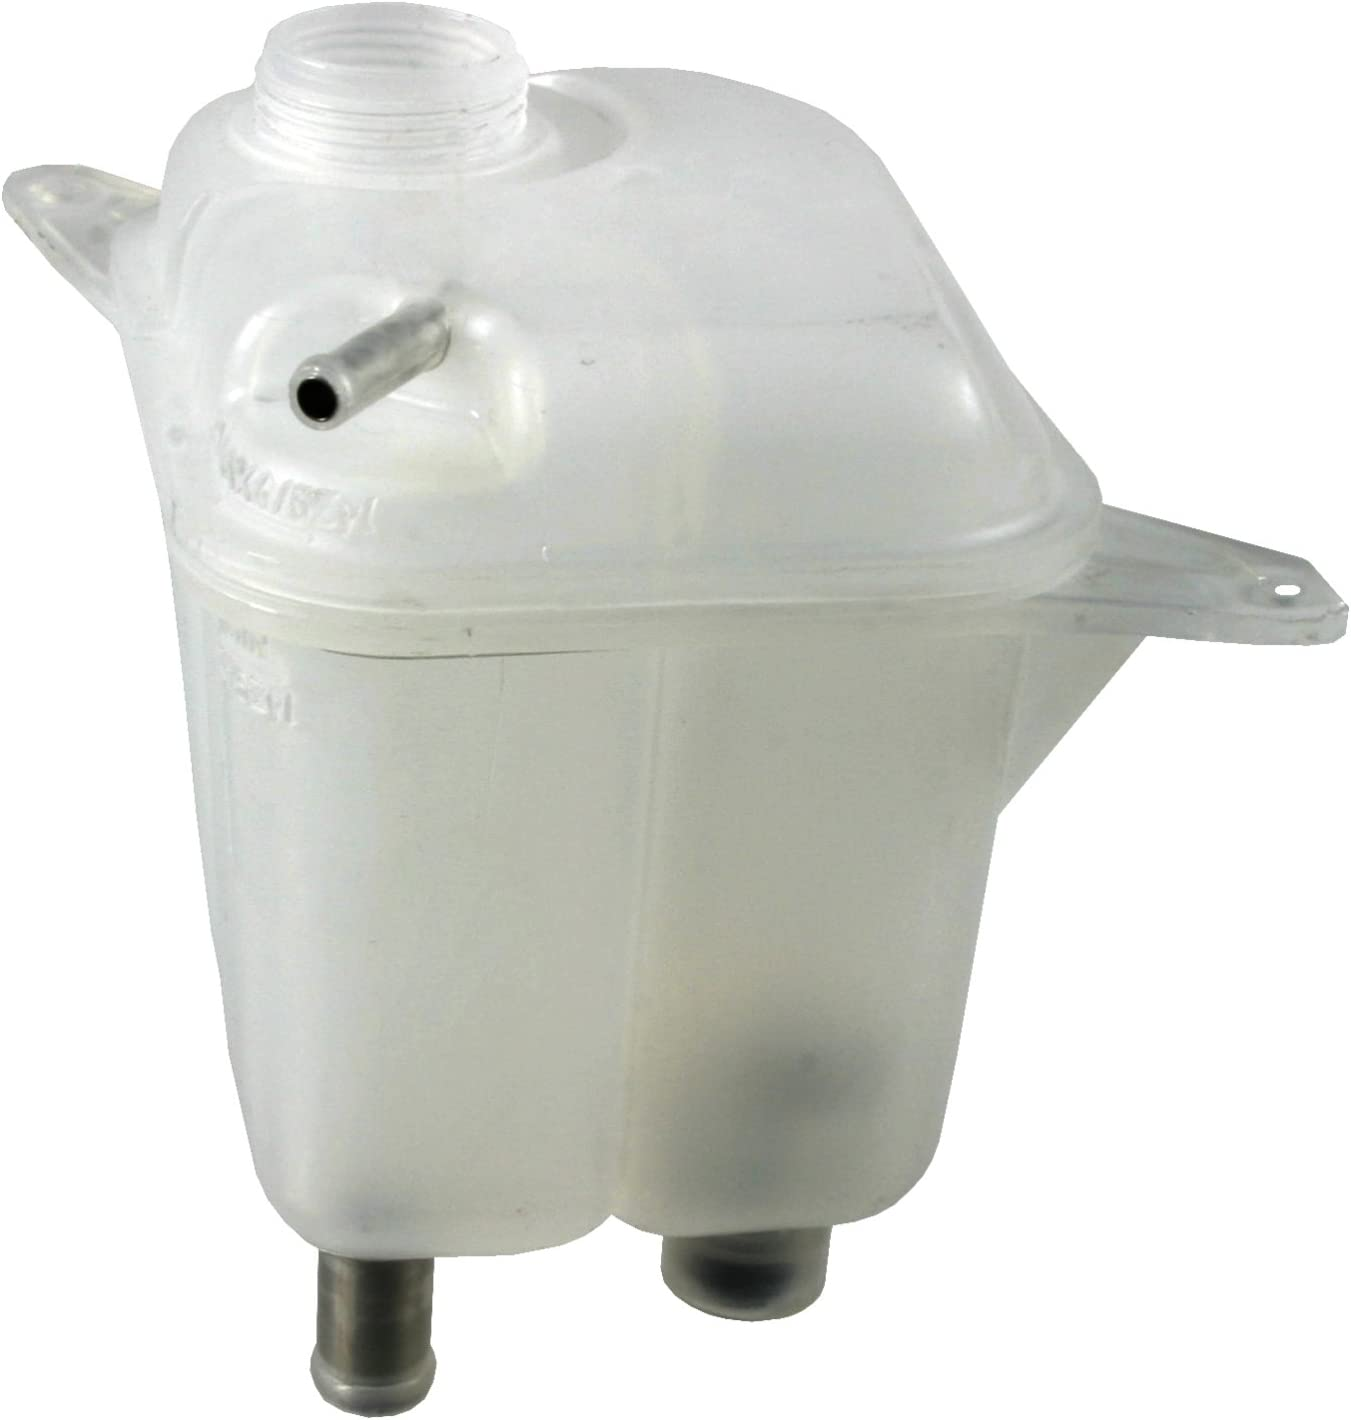 febi bilstein 37324 Coolant Expansion Tank with sensor pack of one